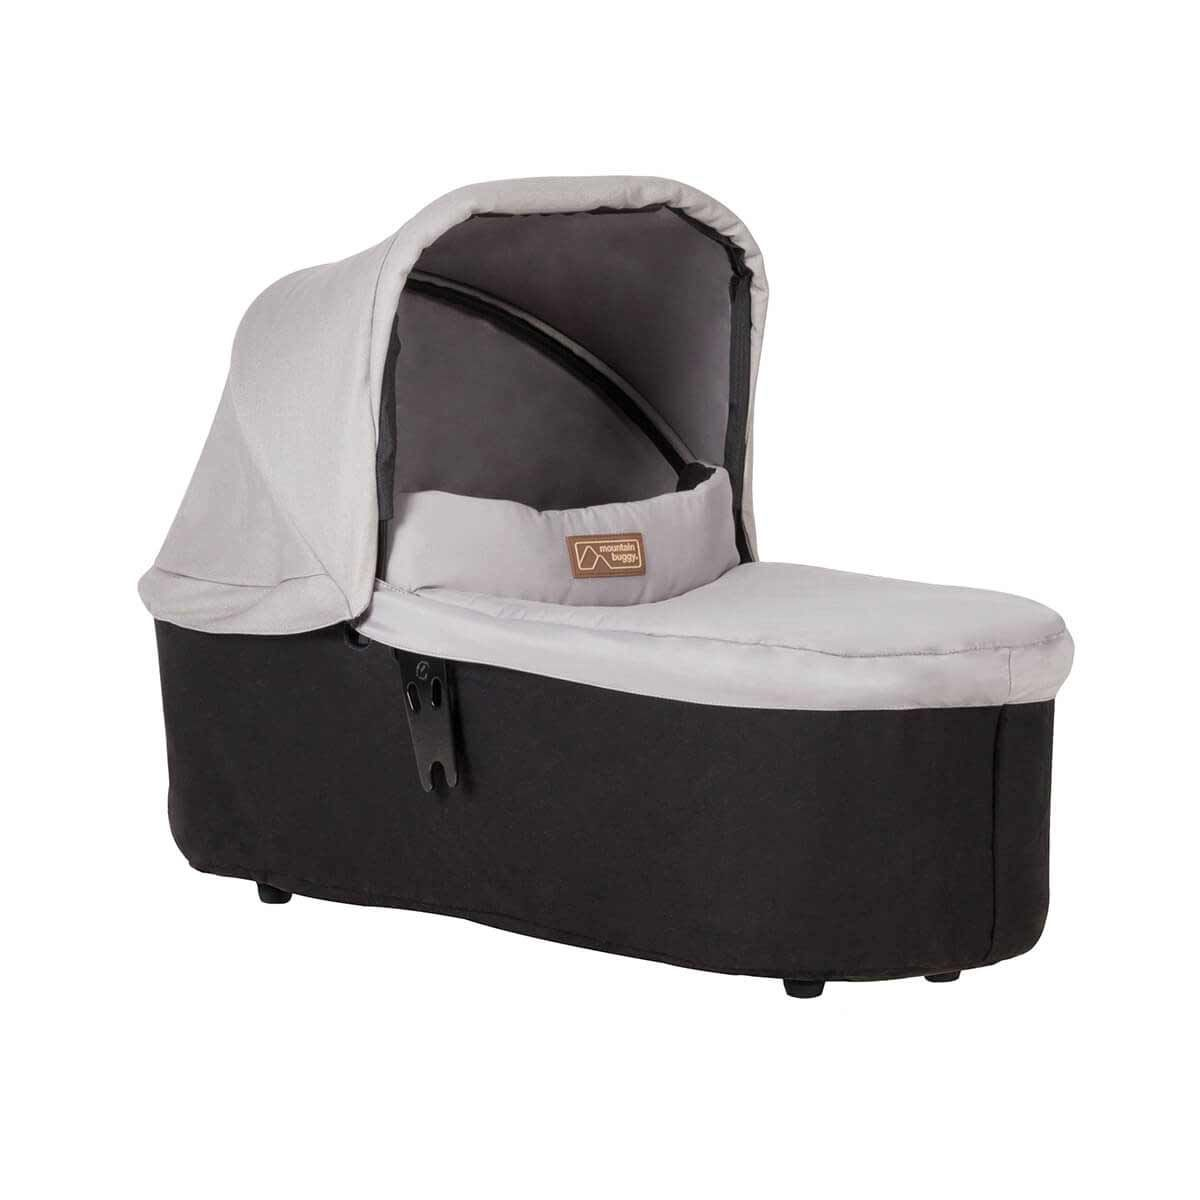 Doppel Kinderwagen Urban Jungle Mountain Buggy Duet V3 In Silver